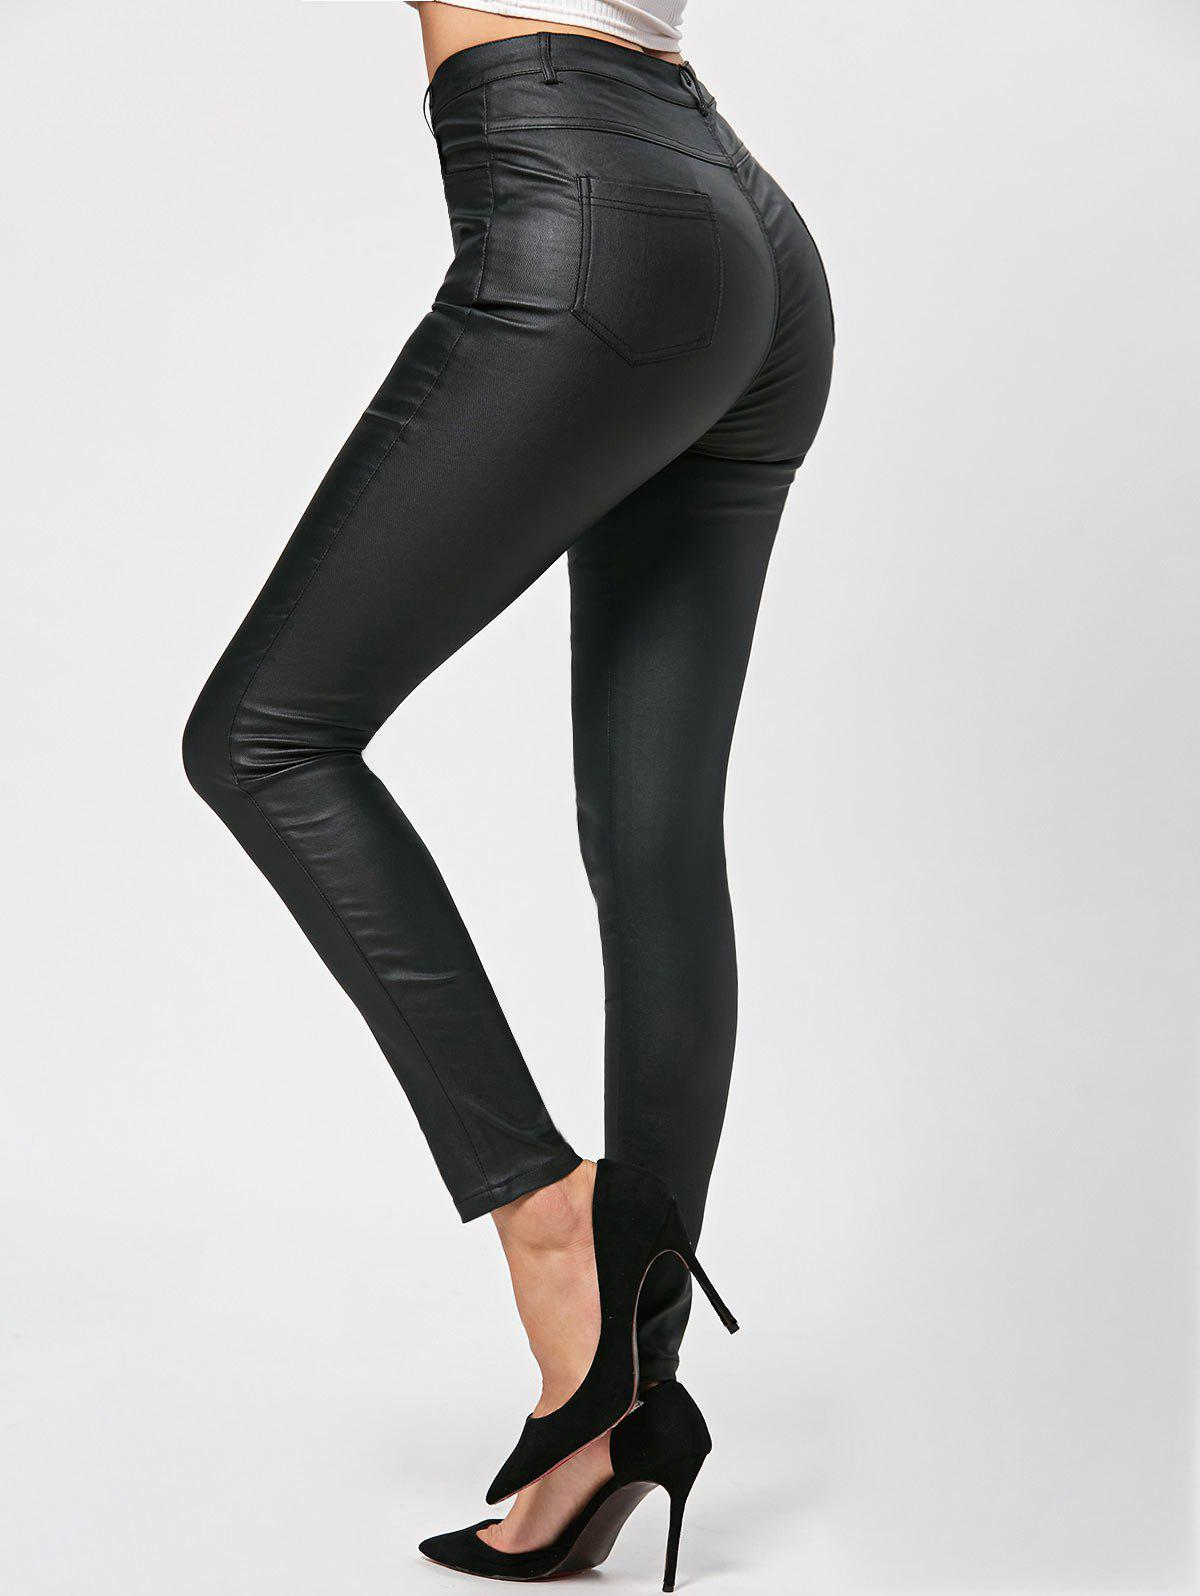 Discount Polished Fitted Pants